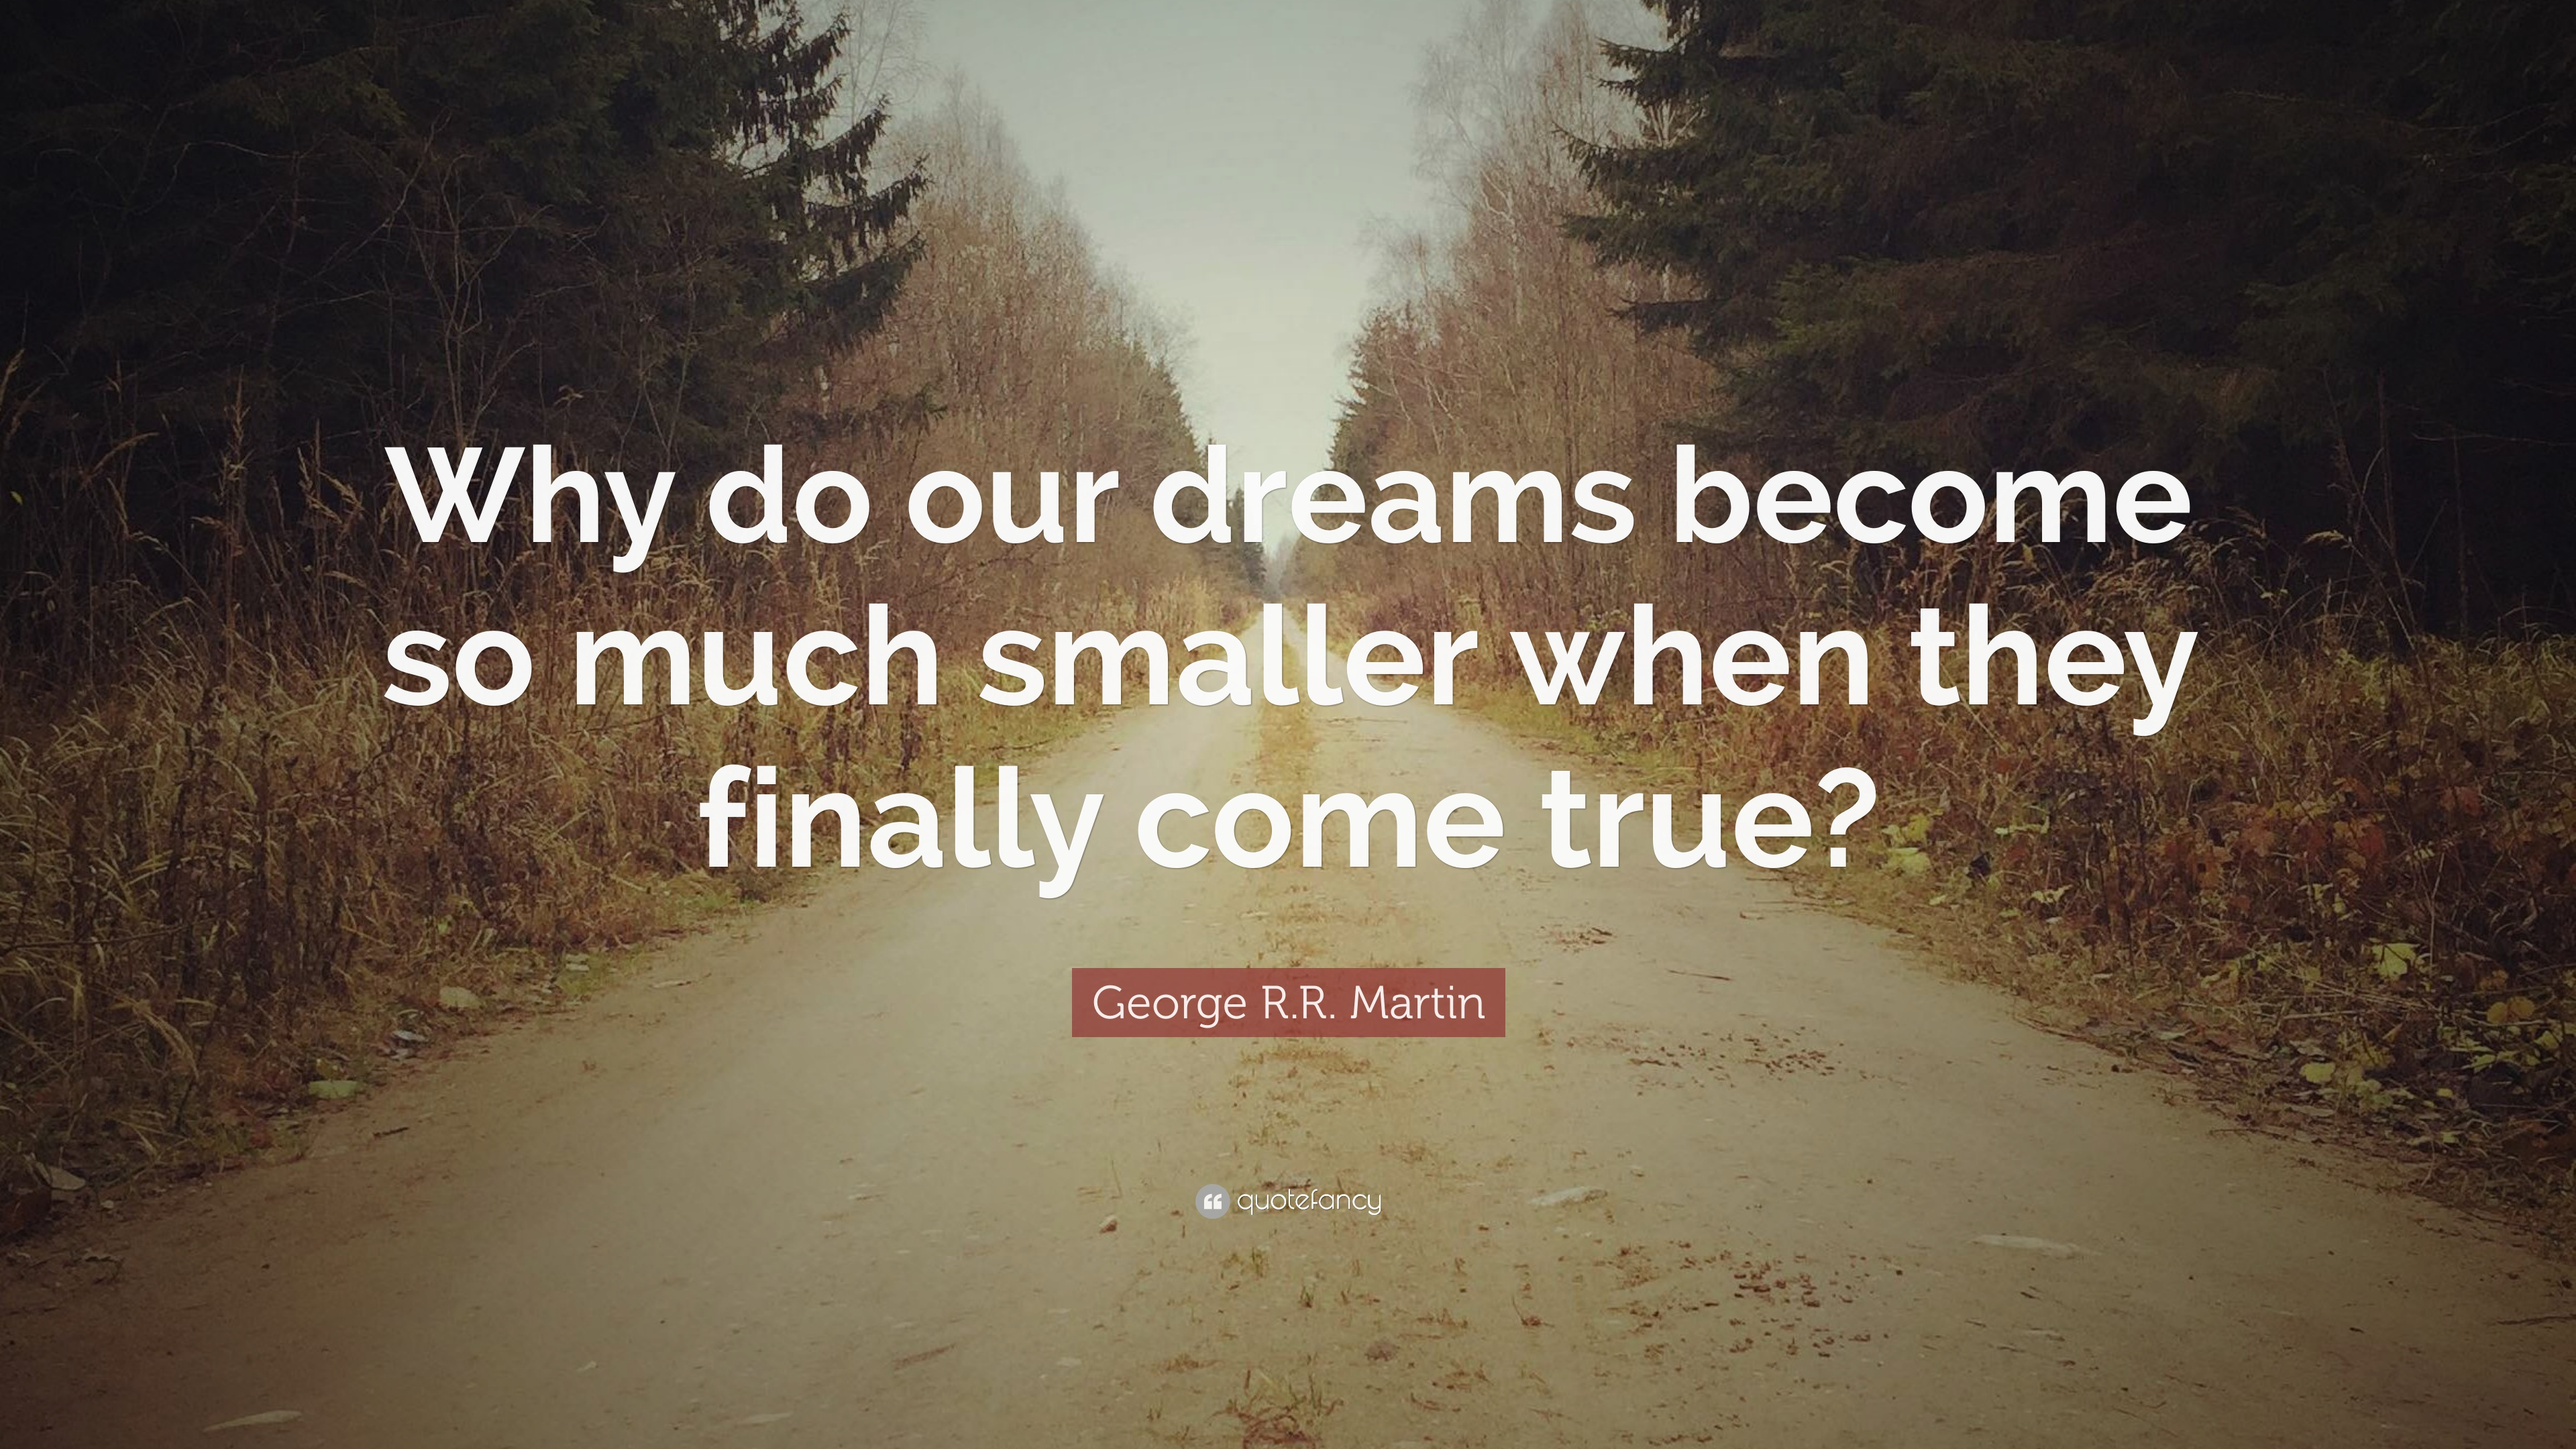 Finally My Dream Come True Quotes Your My Dream Come True Quotes